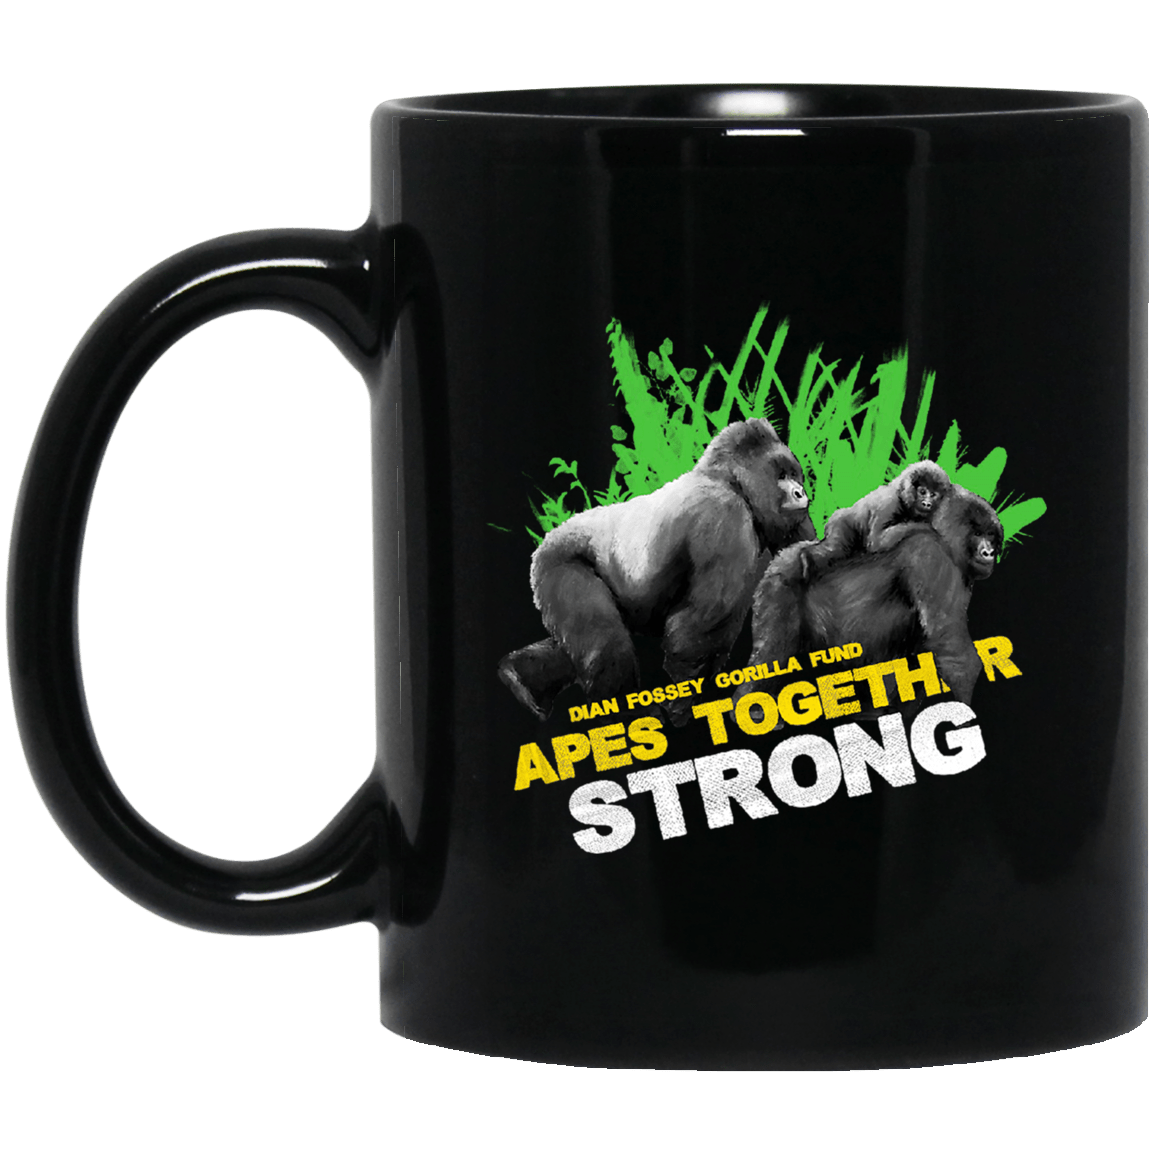 Gorilla Dian Fossey Gorilla Fund Apes Together Strong Black Mug 1065-10181-93051330-49307 - Tee Ript